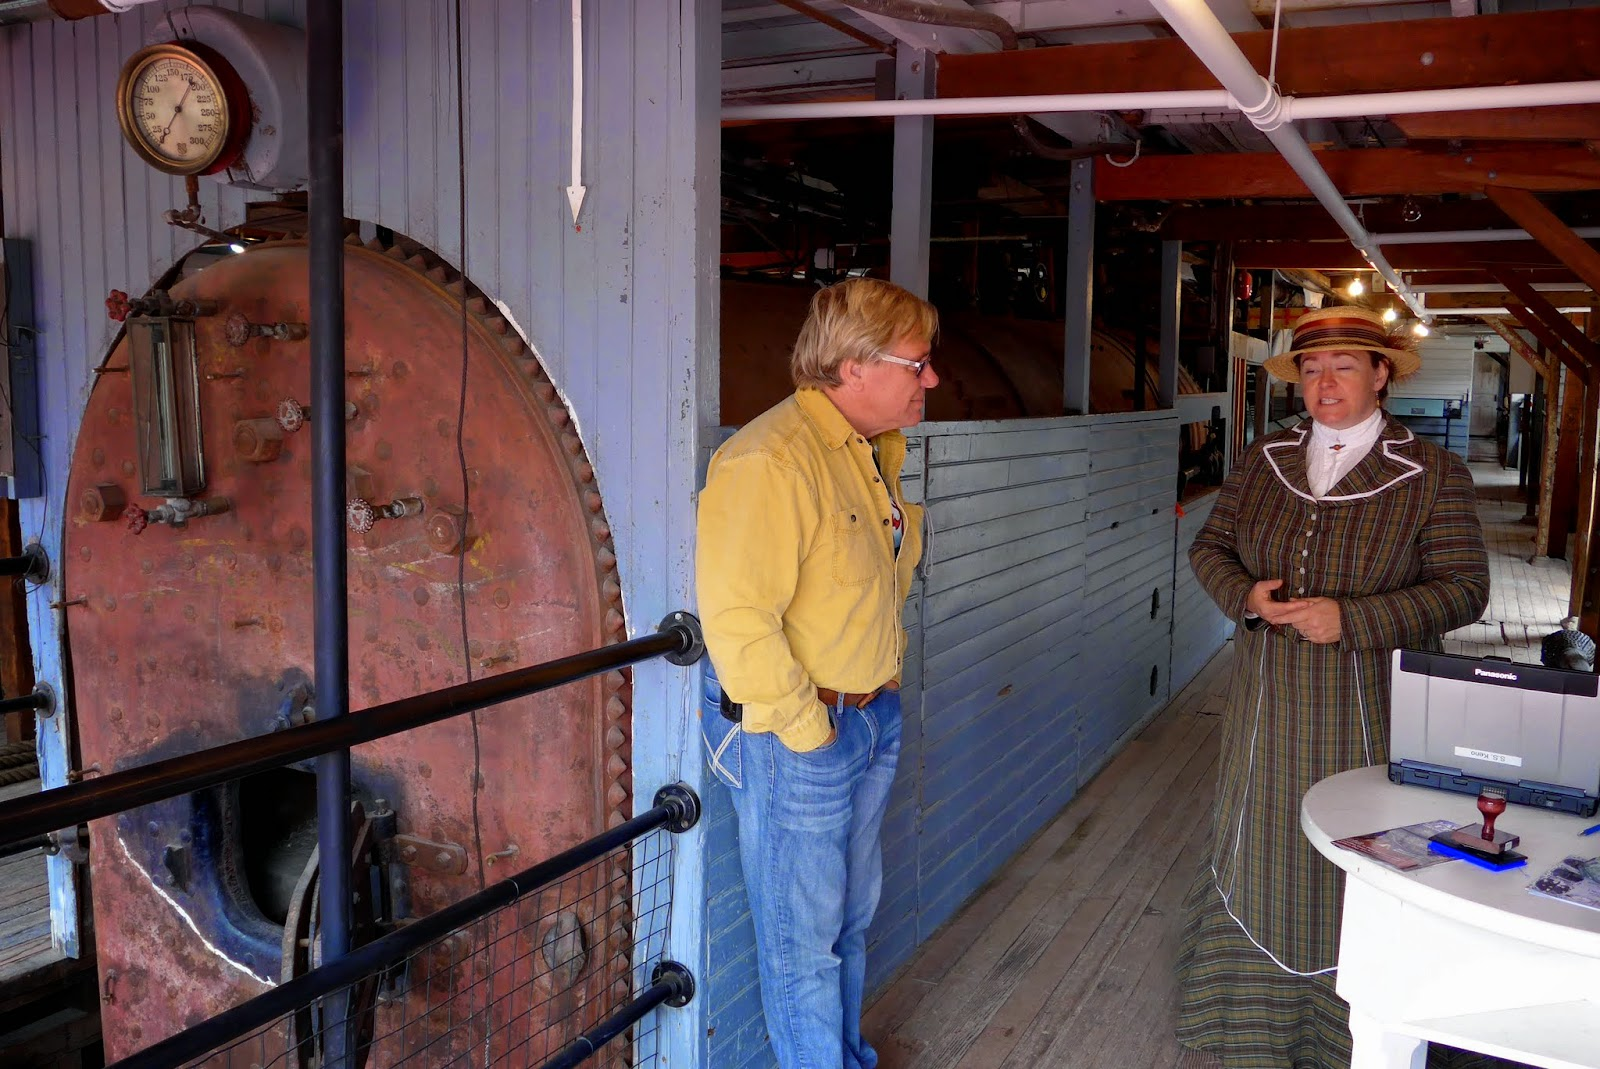 Anders and one of the people working at the SS Keno. Boiler in the back ground